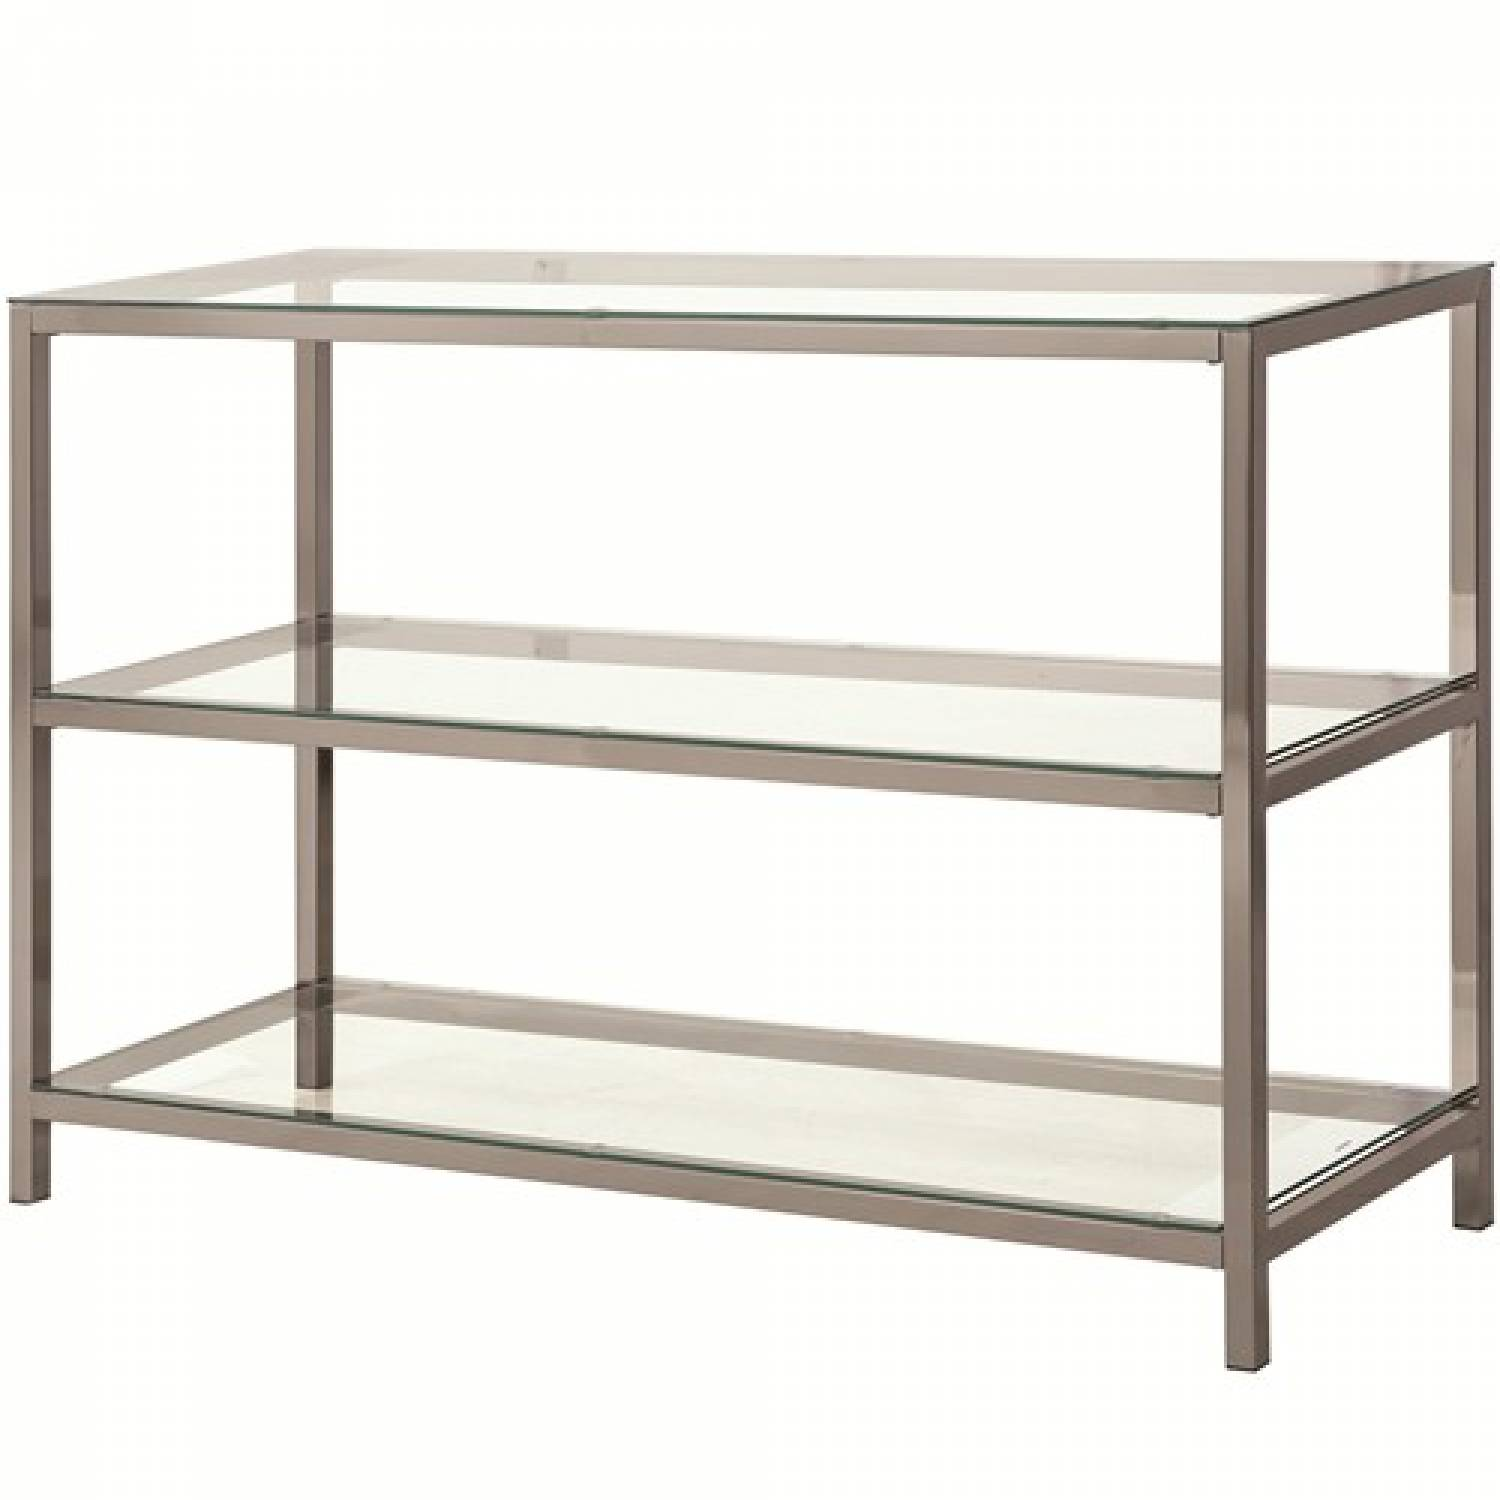 72022 sofa table with 2 shelves for Furniture 2 u